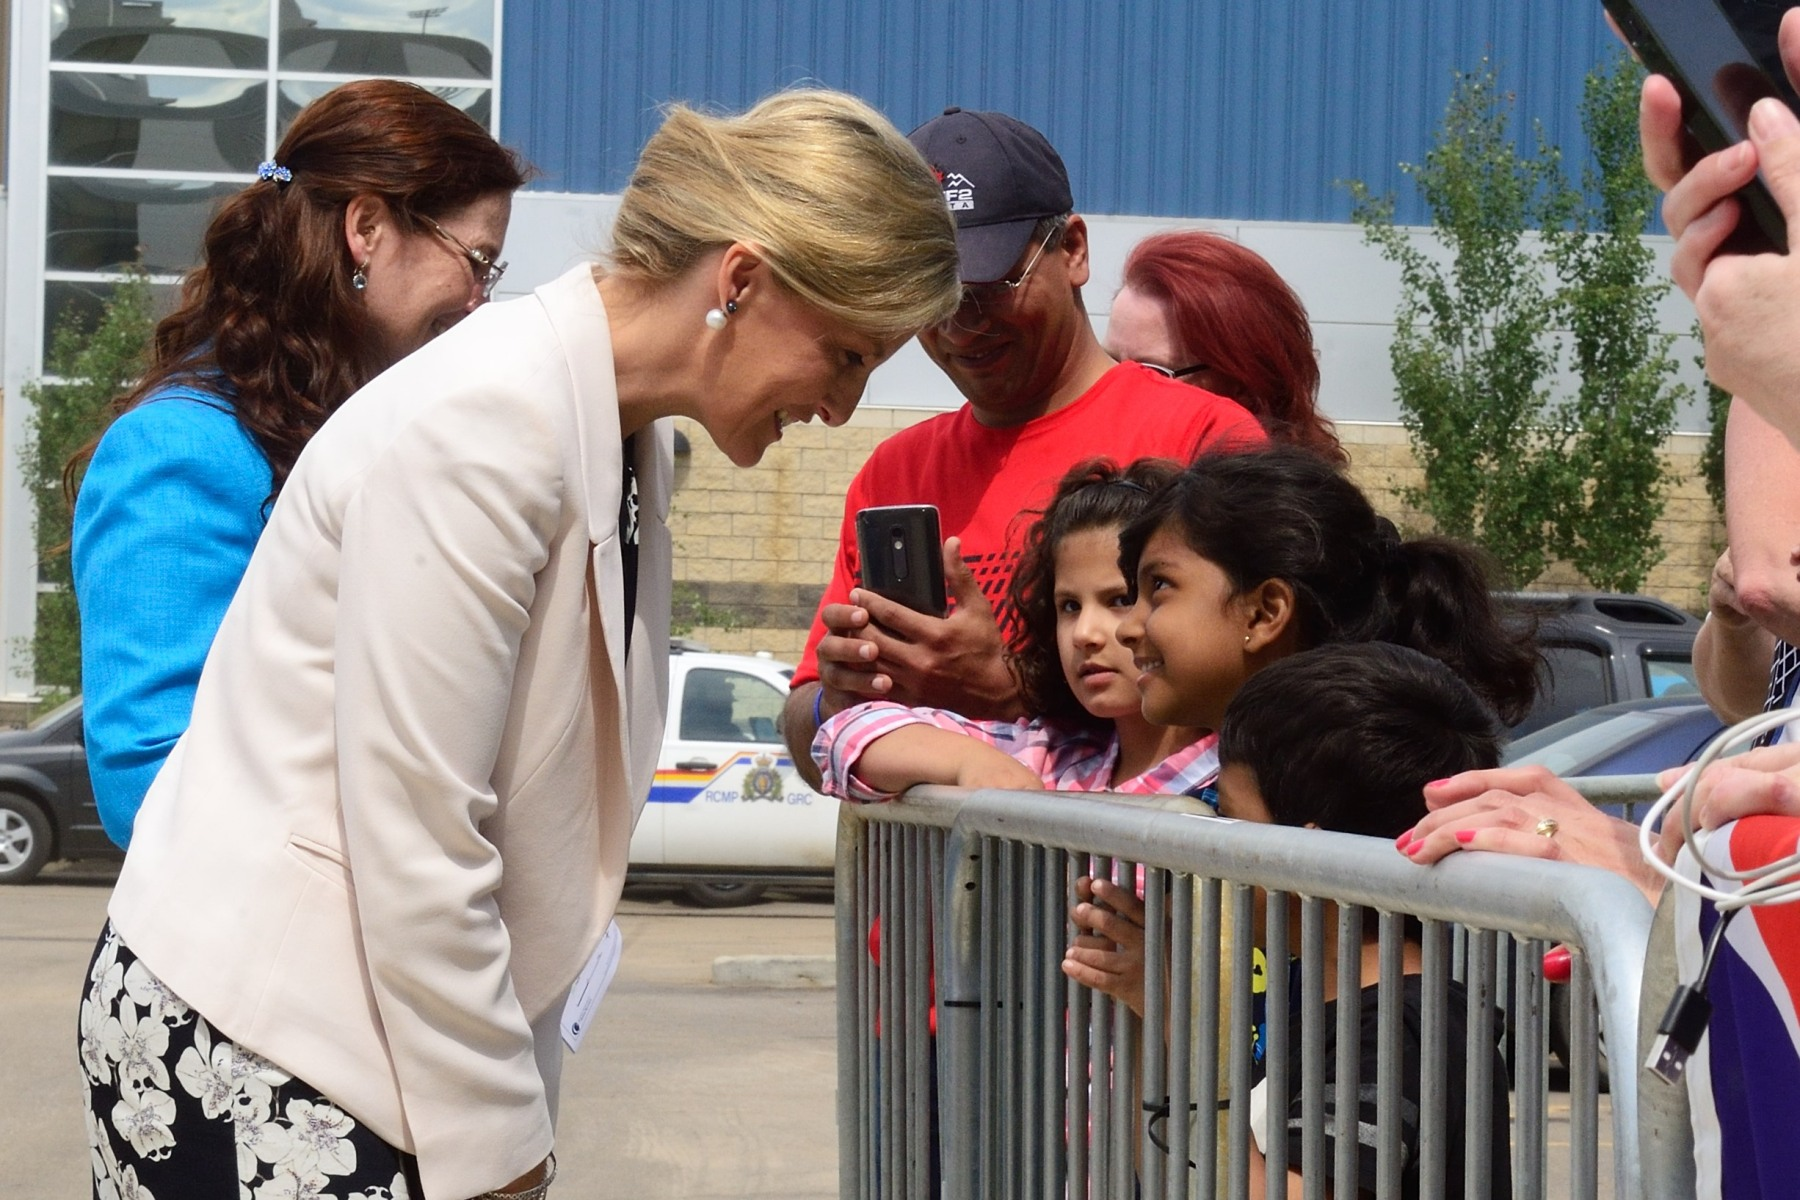 Following their tour of Fort McMurray, His Excellency and Her Royal Highness were welcomed by members of the public at Shell Place, which temporarily served as one of the evacuation centres during the crisis.